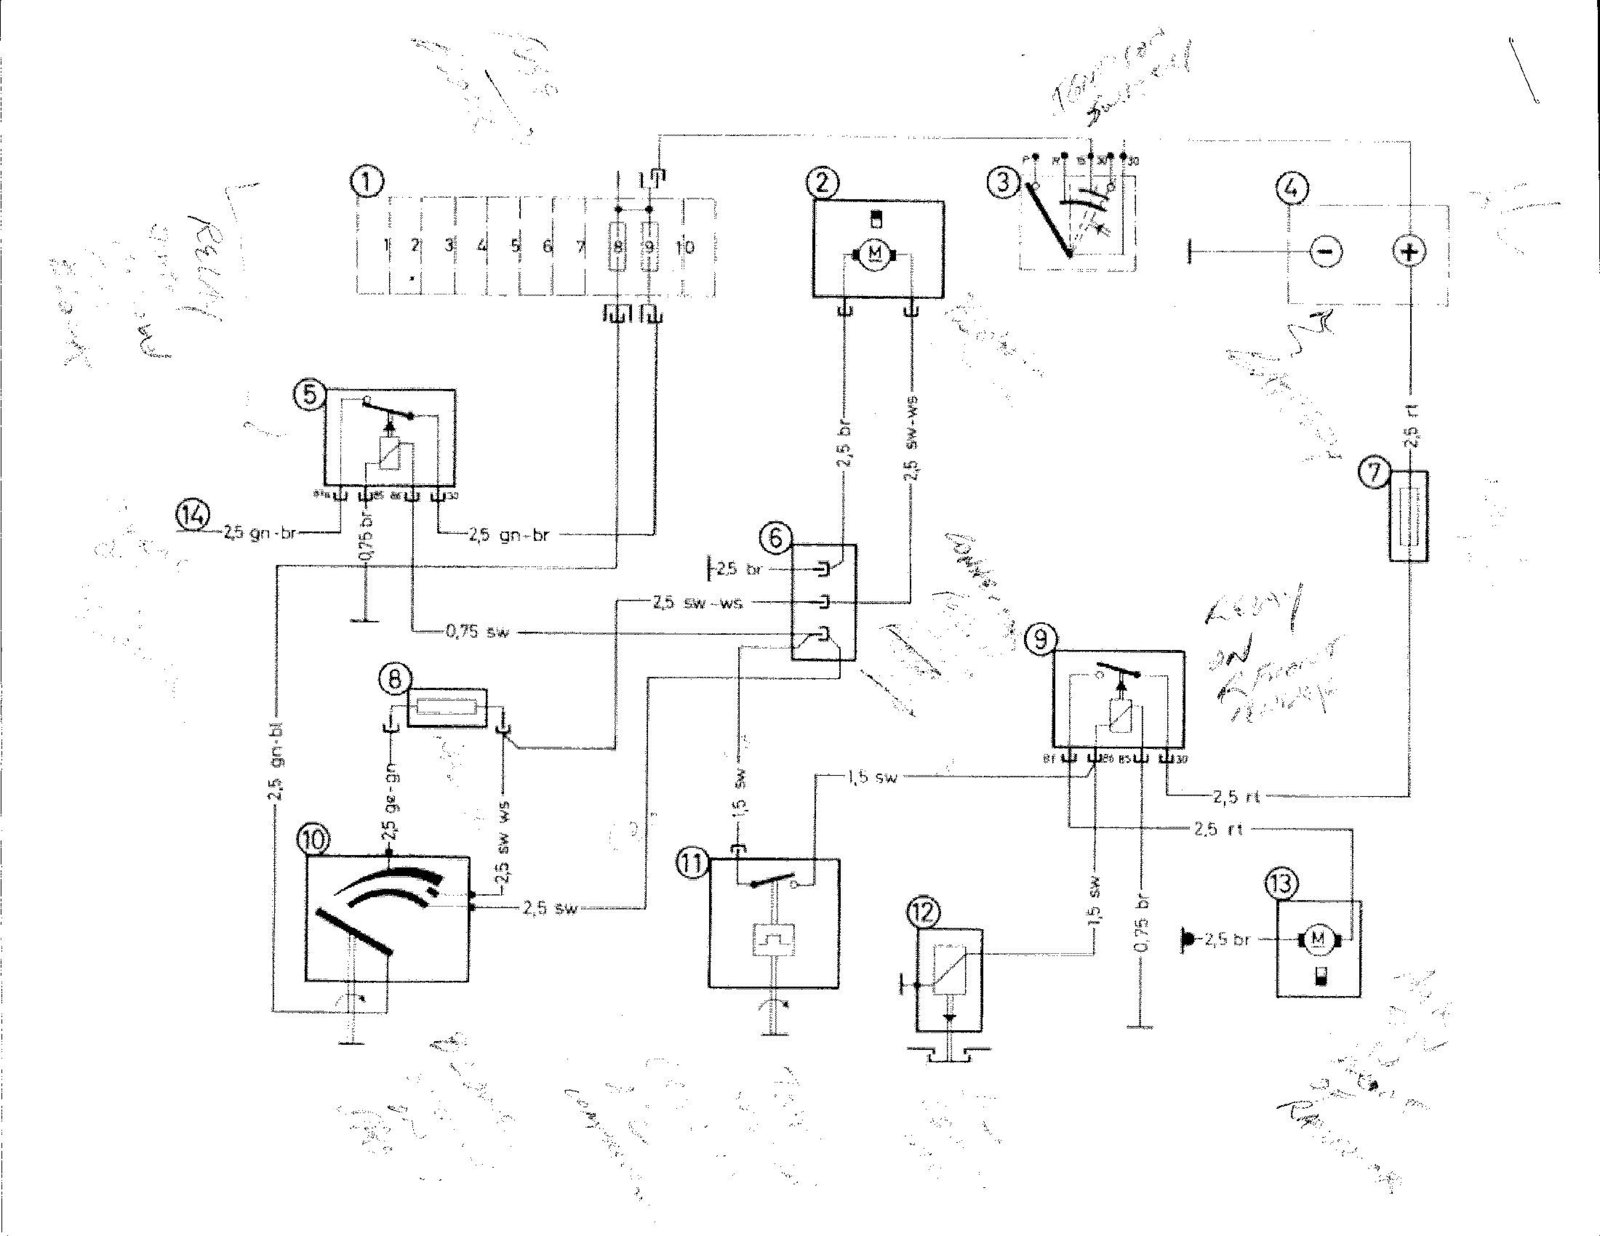 hight resolution of wiring diagram 1974 bmw cs wiring diagram repair guides 73 3 0cs wiring help needed bmw